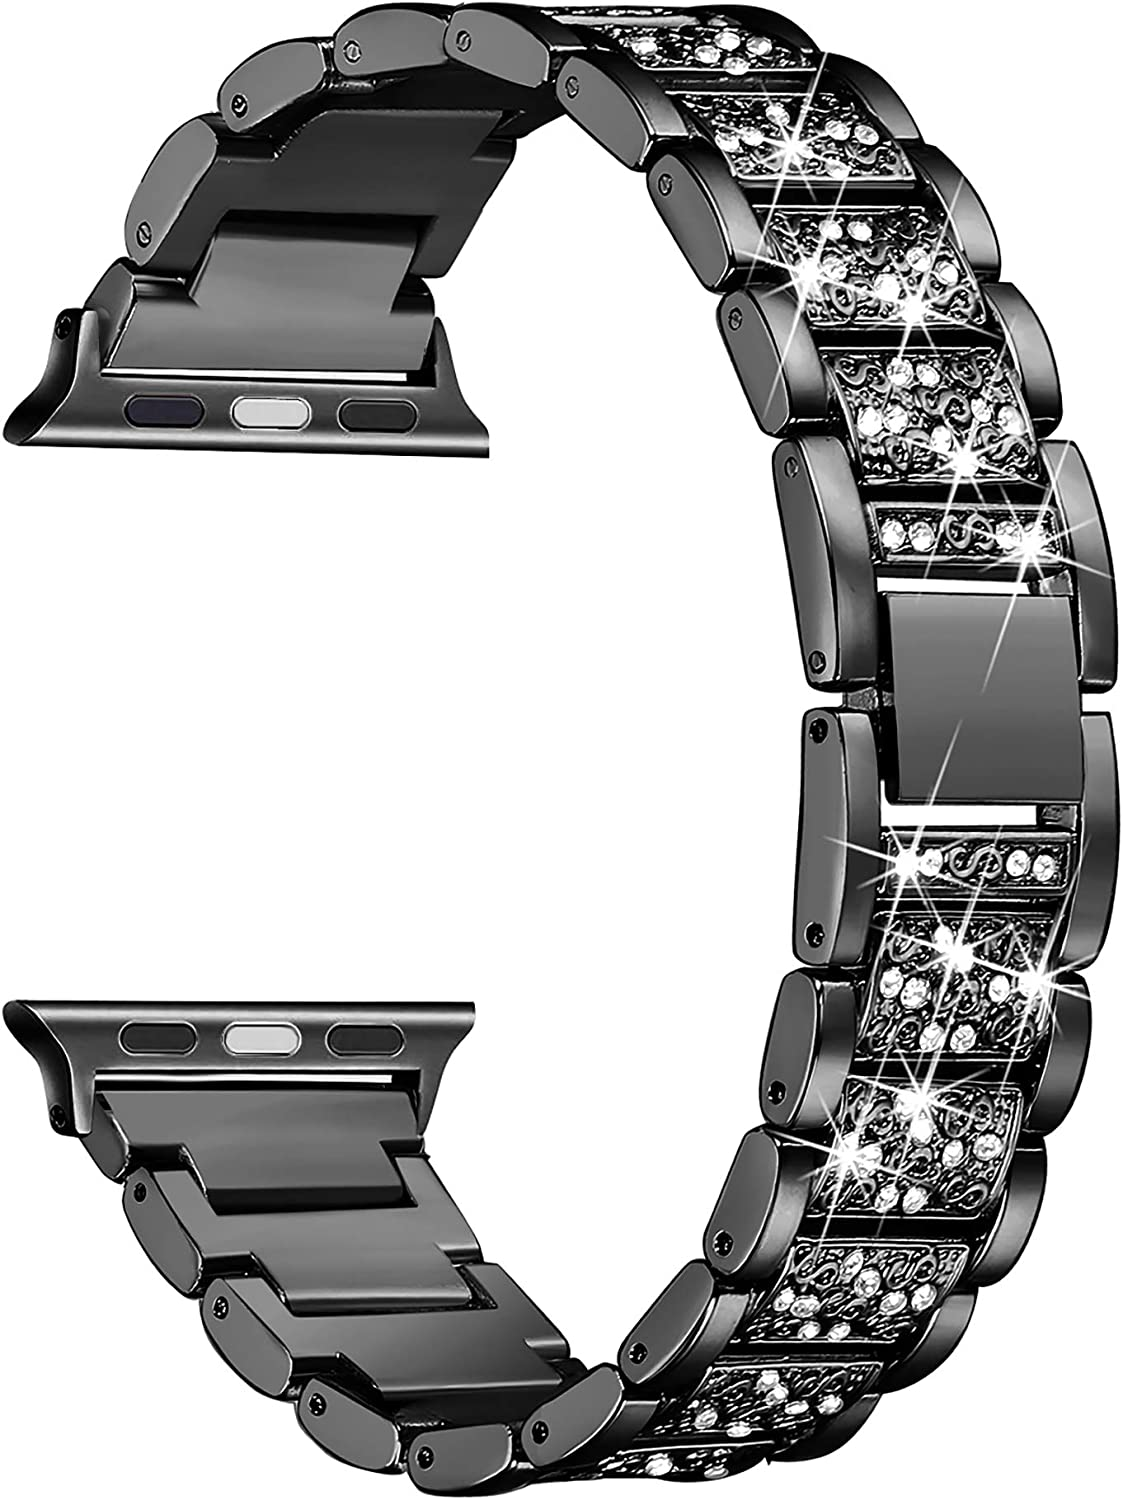 Secbolt Bling Bands Compatible with Apple Watch Band 42mm 44mm Women iWatch SE Series 6/5/4/3/2/1, Dressy Jewelry Metal Bracelet with Rhinestones, Black